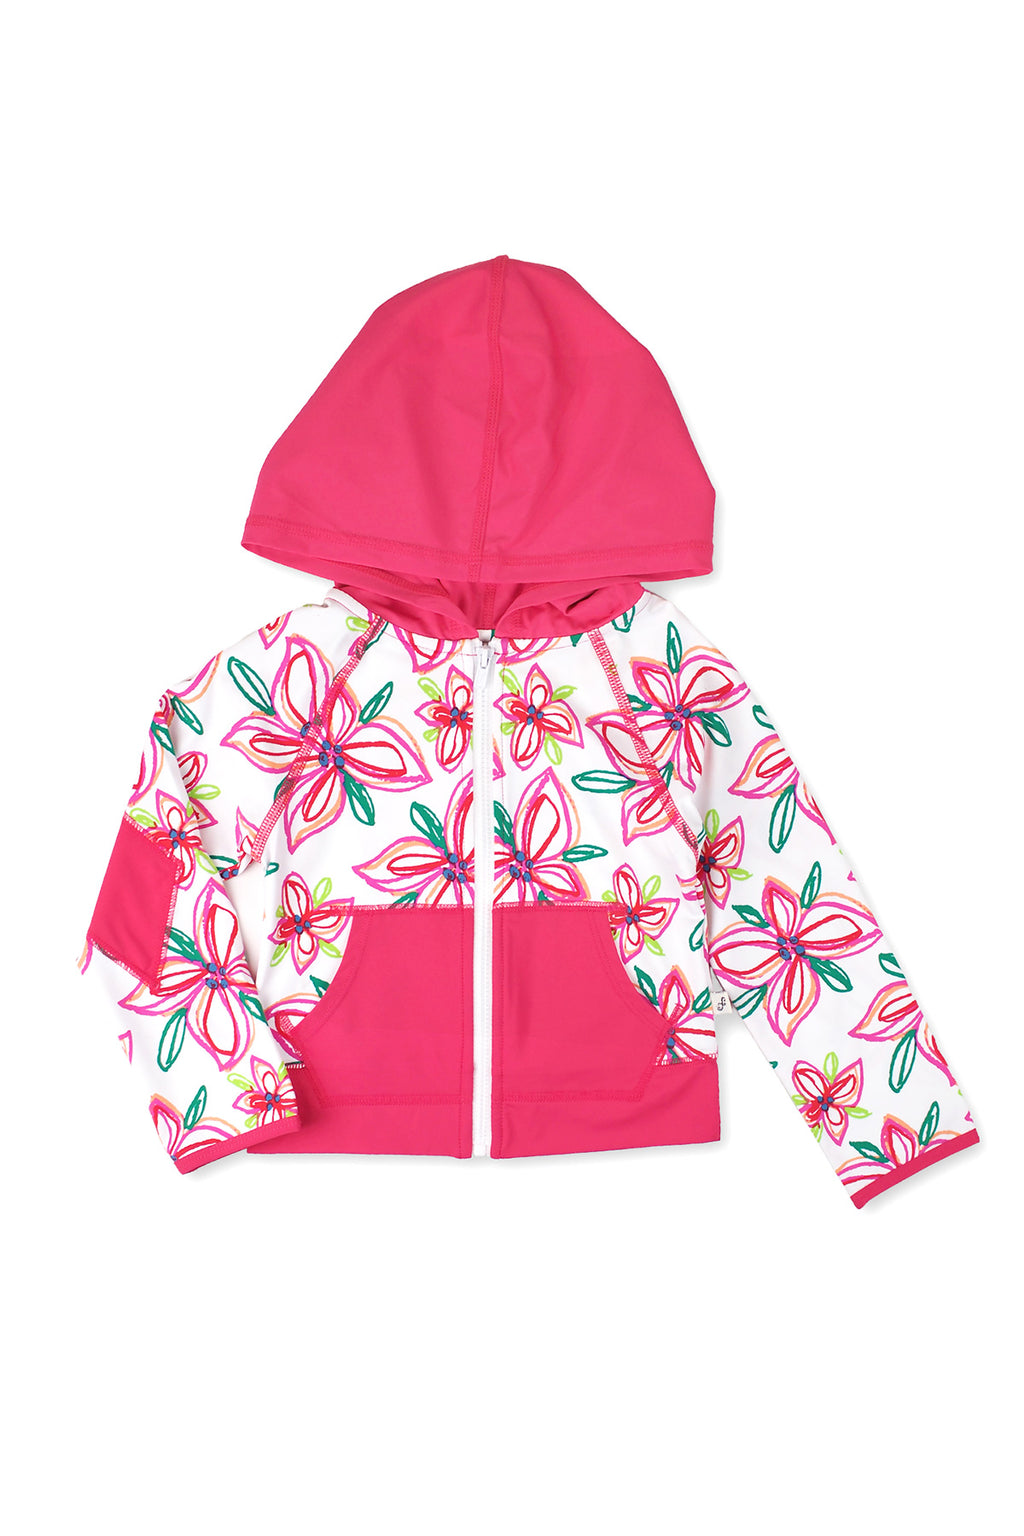 Crayon Flower Hooded Zip-up Rash Guard, Pink